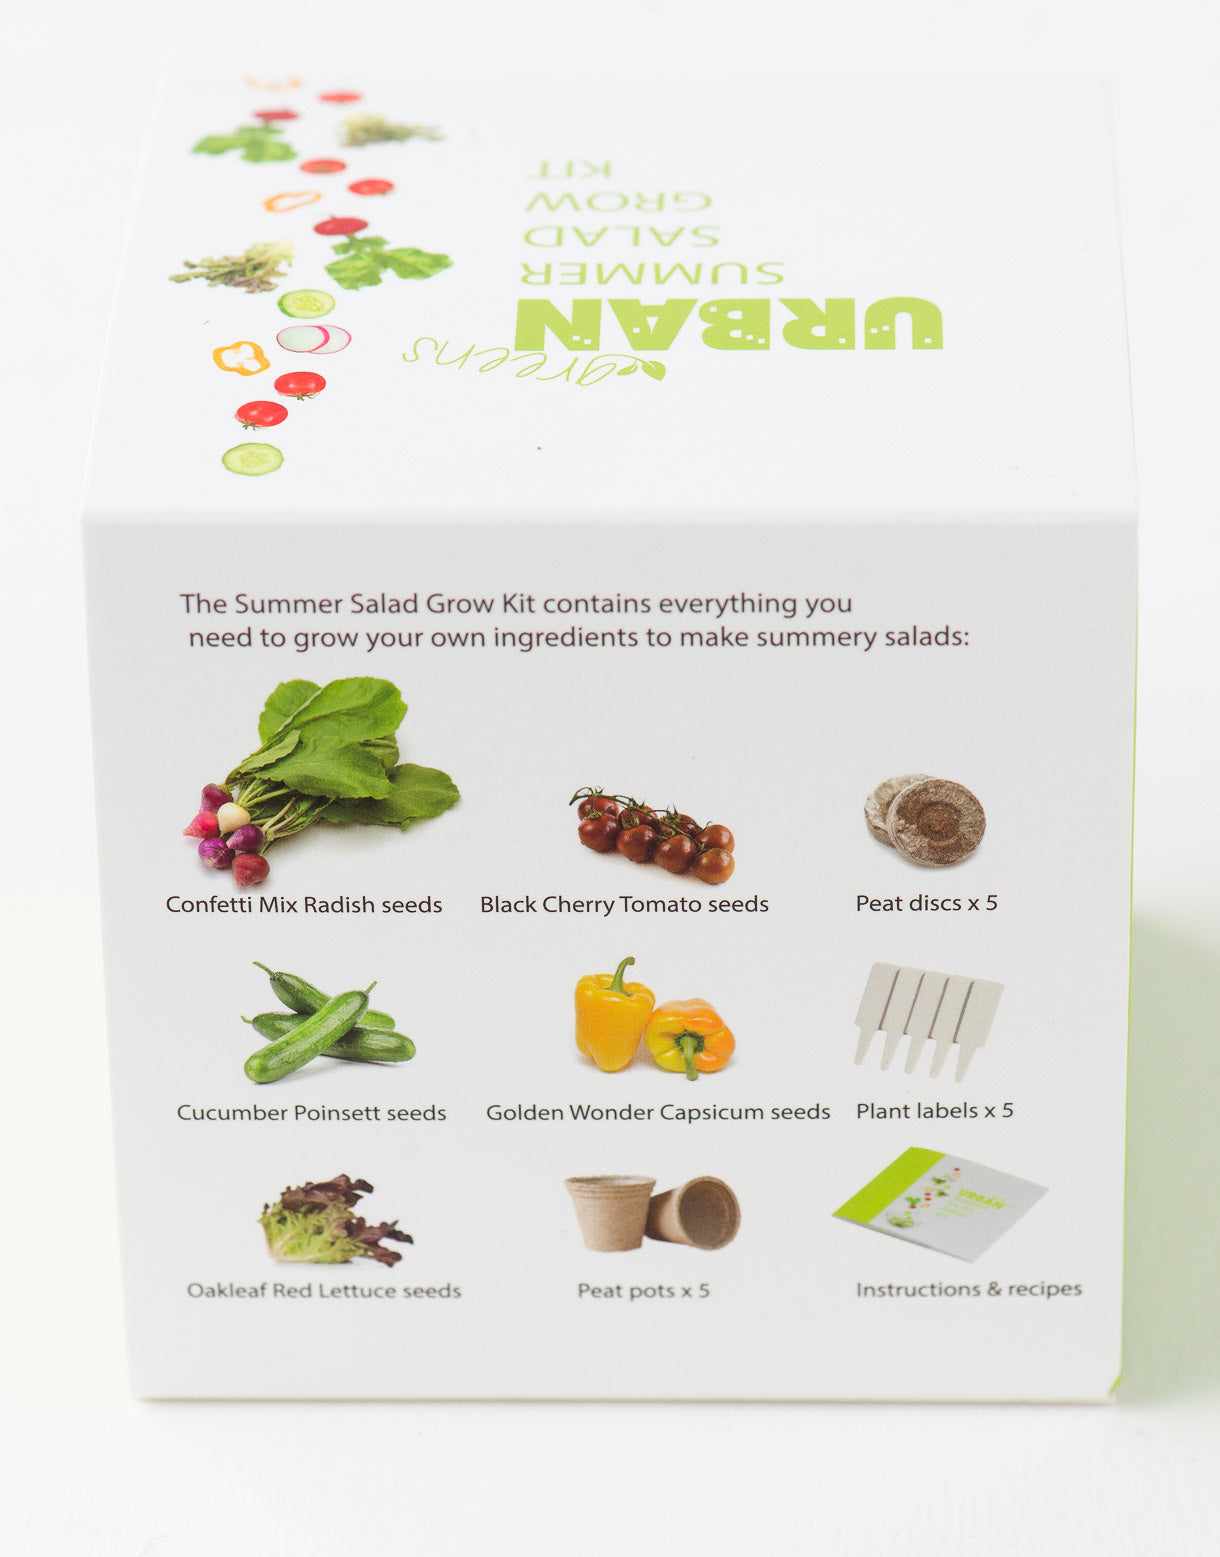 Summer Salad Grow kit